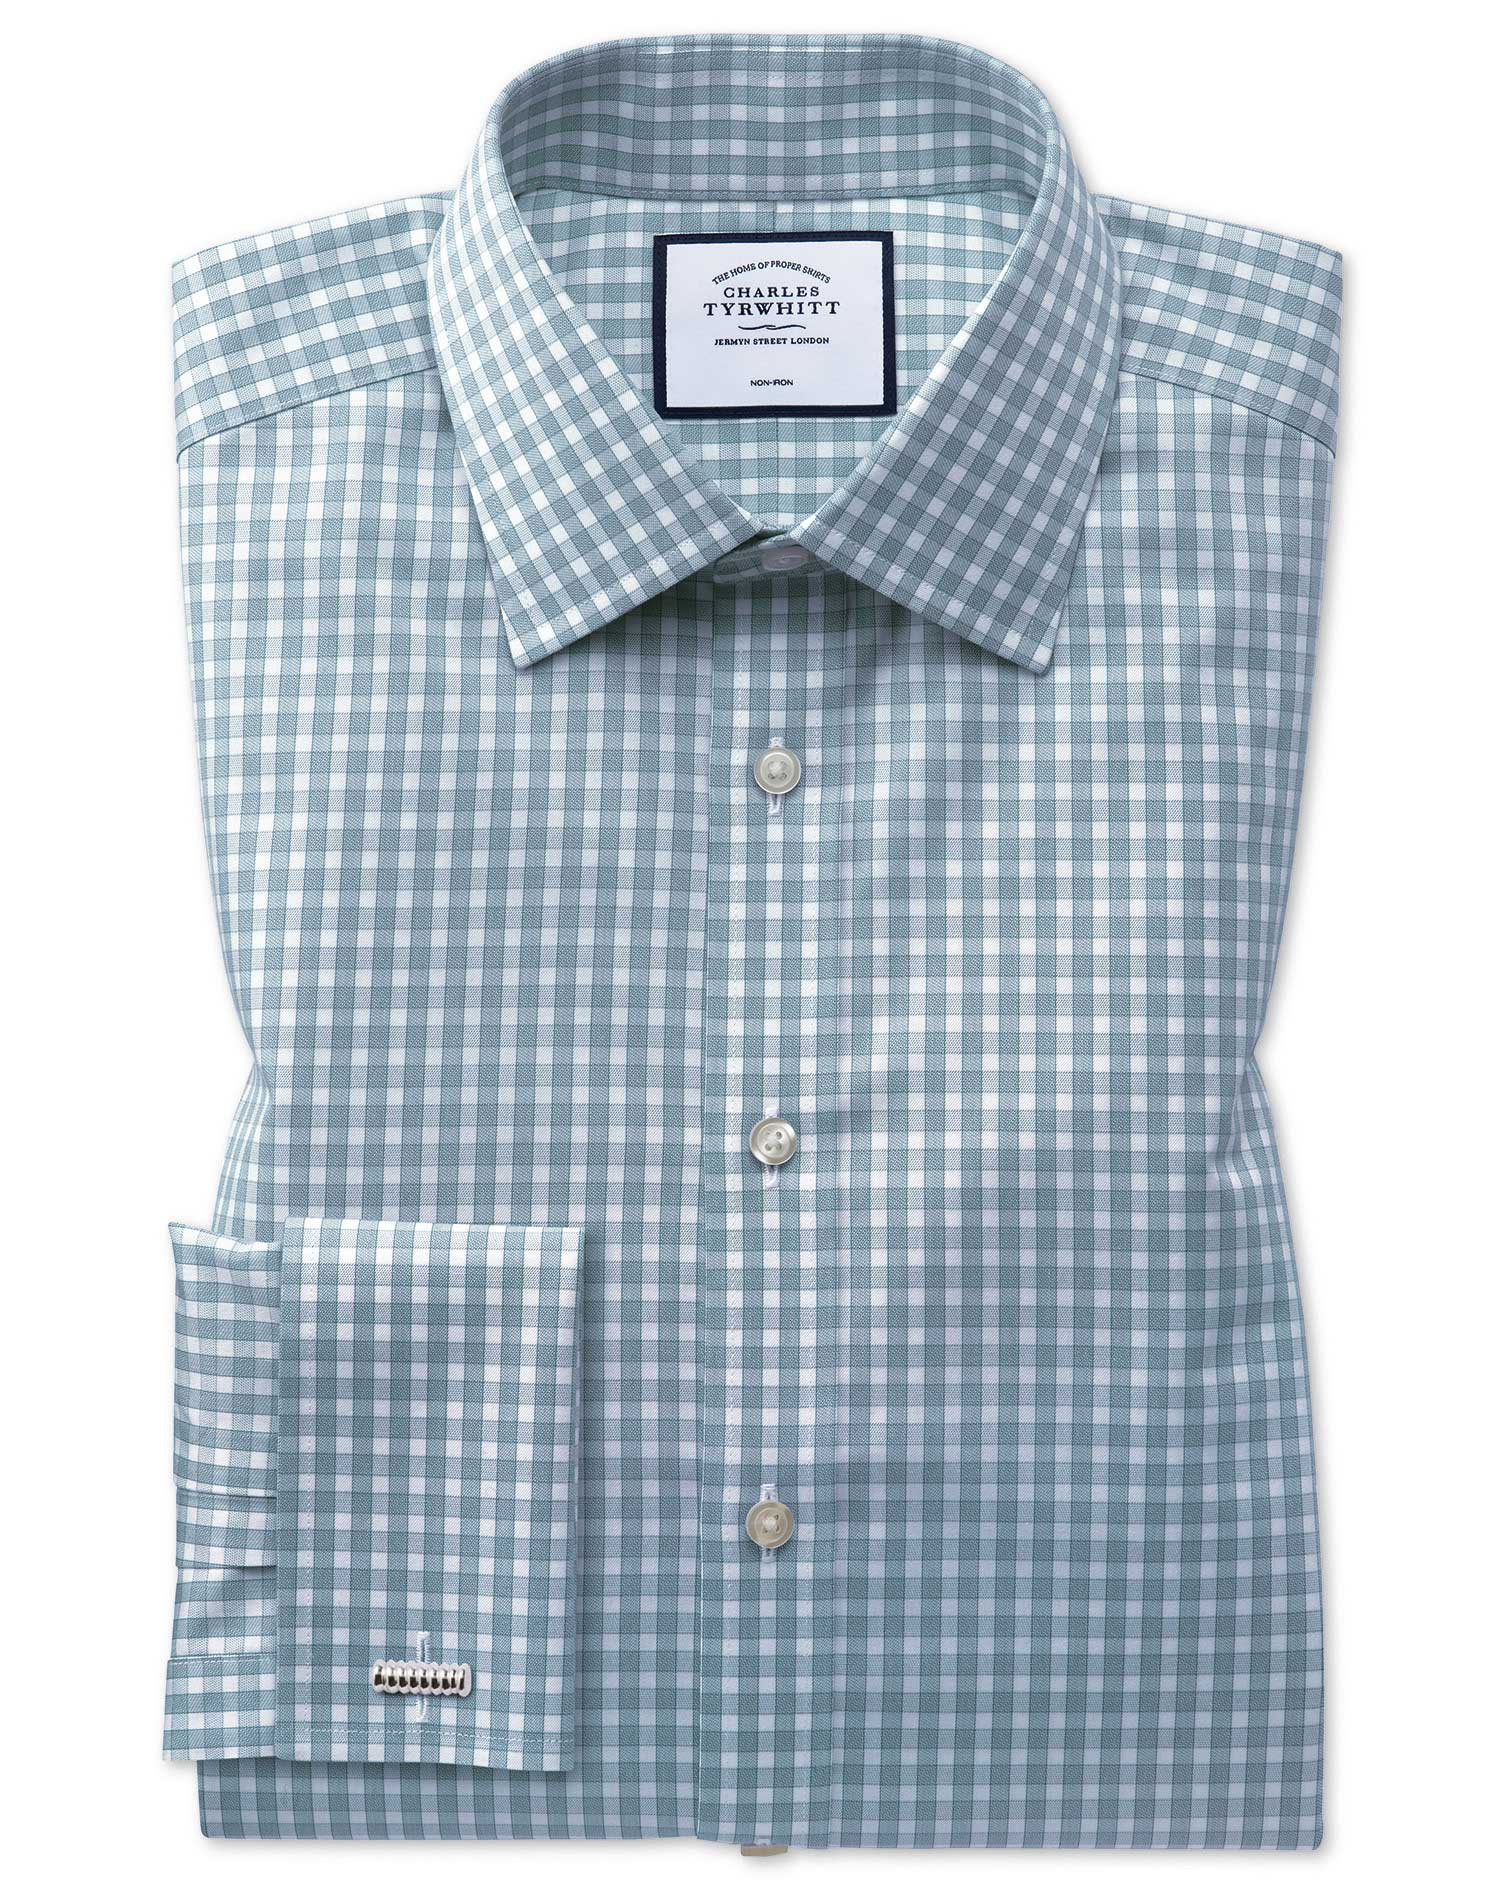 Classic Fit Non-Iron Twill Gingham Teal Cotton Formal Shirt Double Cuff Size 17.5/35 by Charles Tyrw